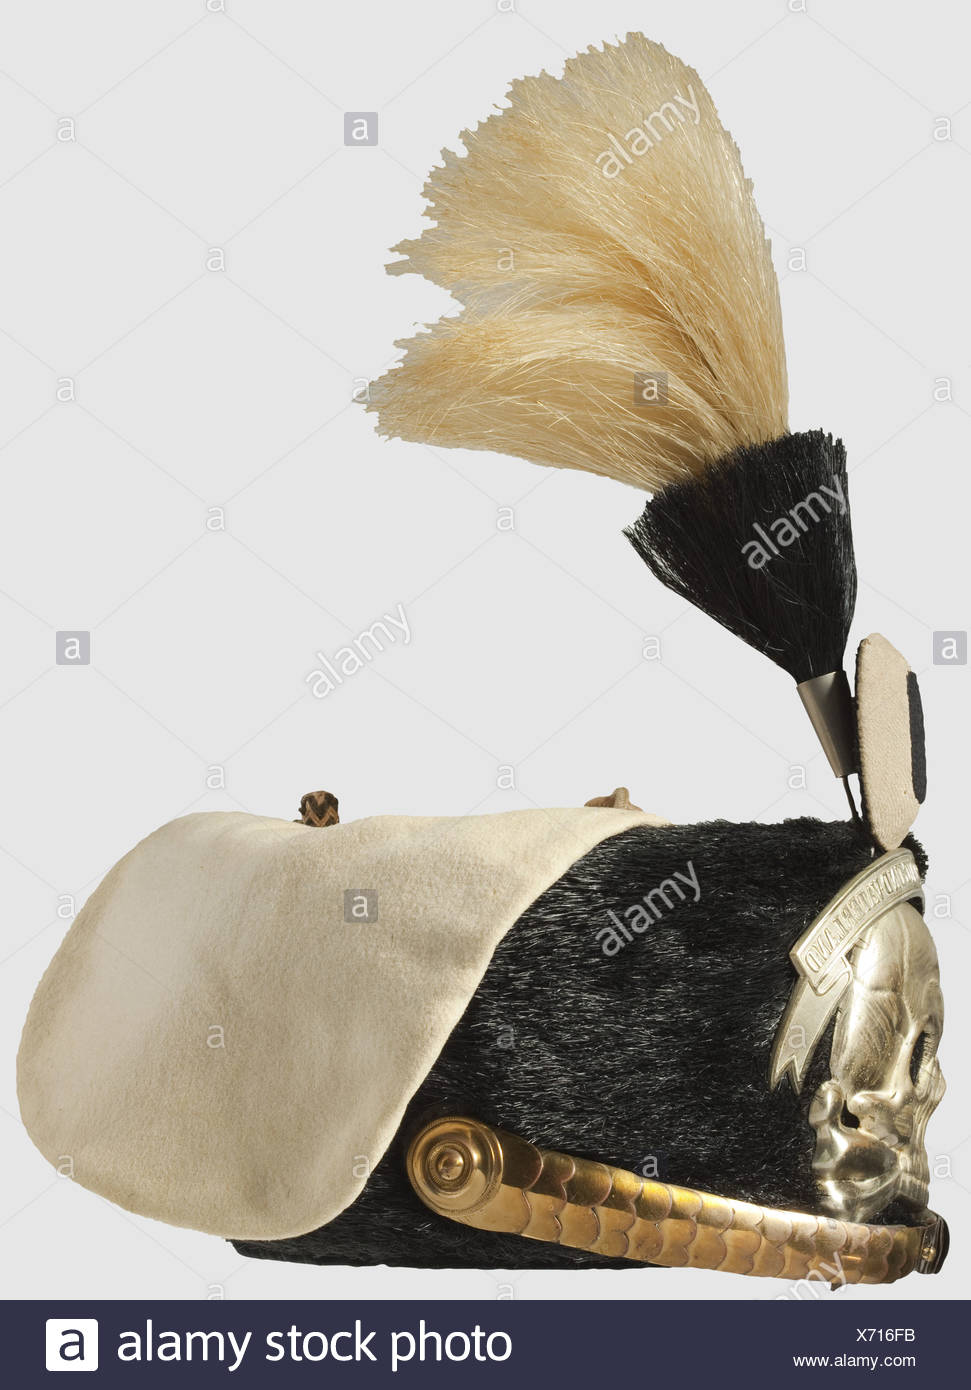 62eef53680886 Hussar Busby Stock Photos   Hussar Busby Stock Images - Alamy